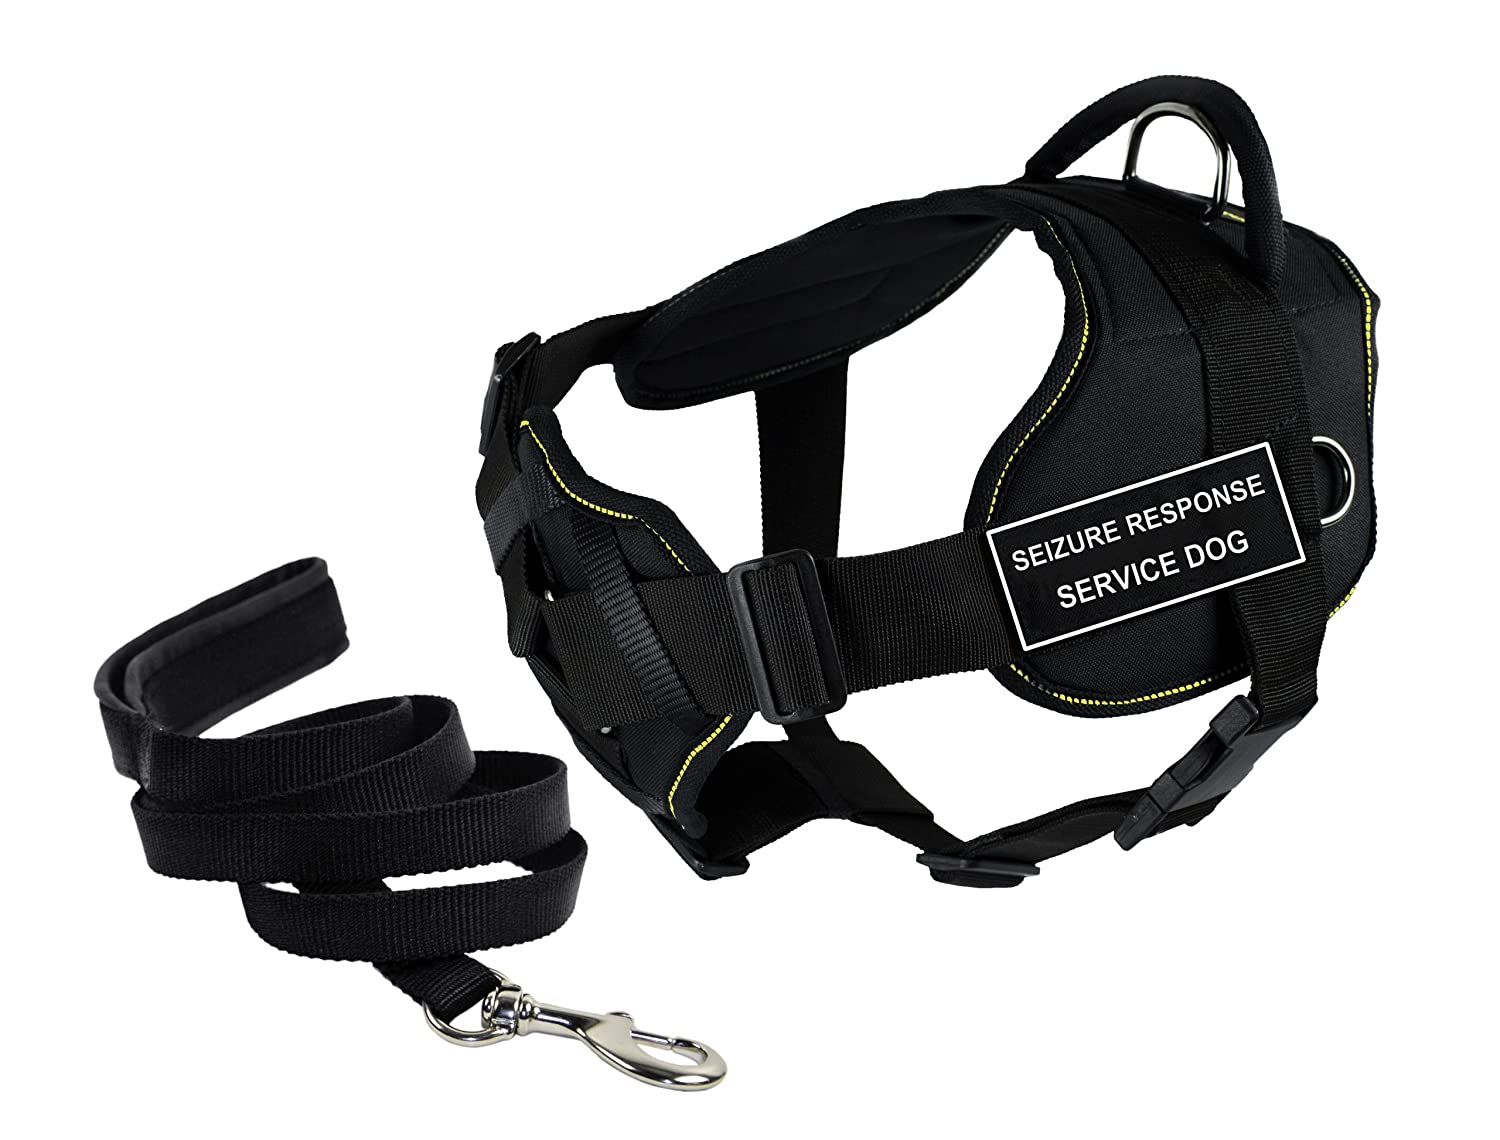 Dean & Tyler's DT Fun Chest Support SEIZURE RESPONSE SERVICE DOG Harness, Large, with 6 ft Padded Puppy Leash.